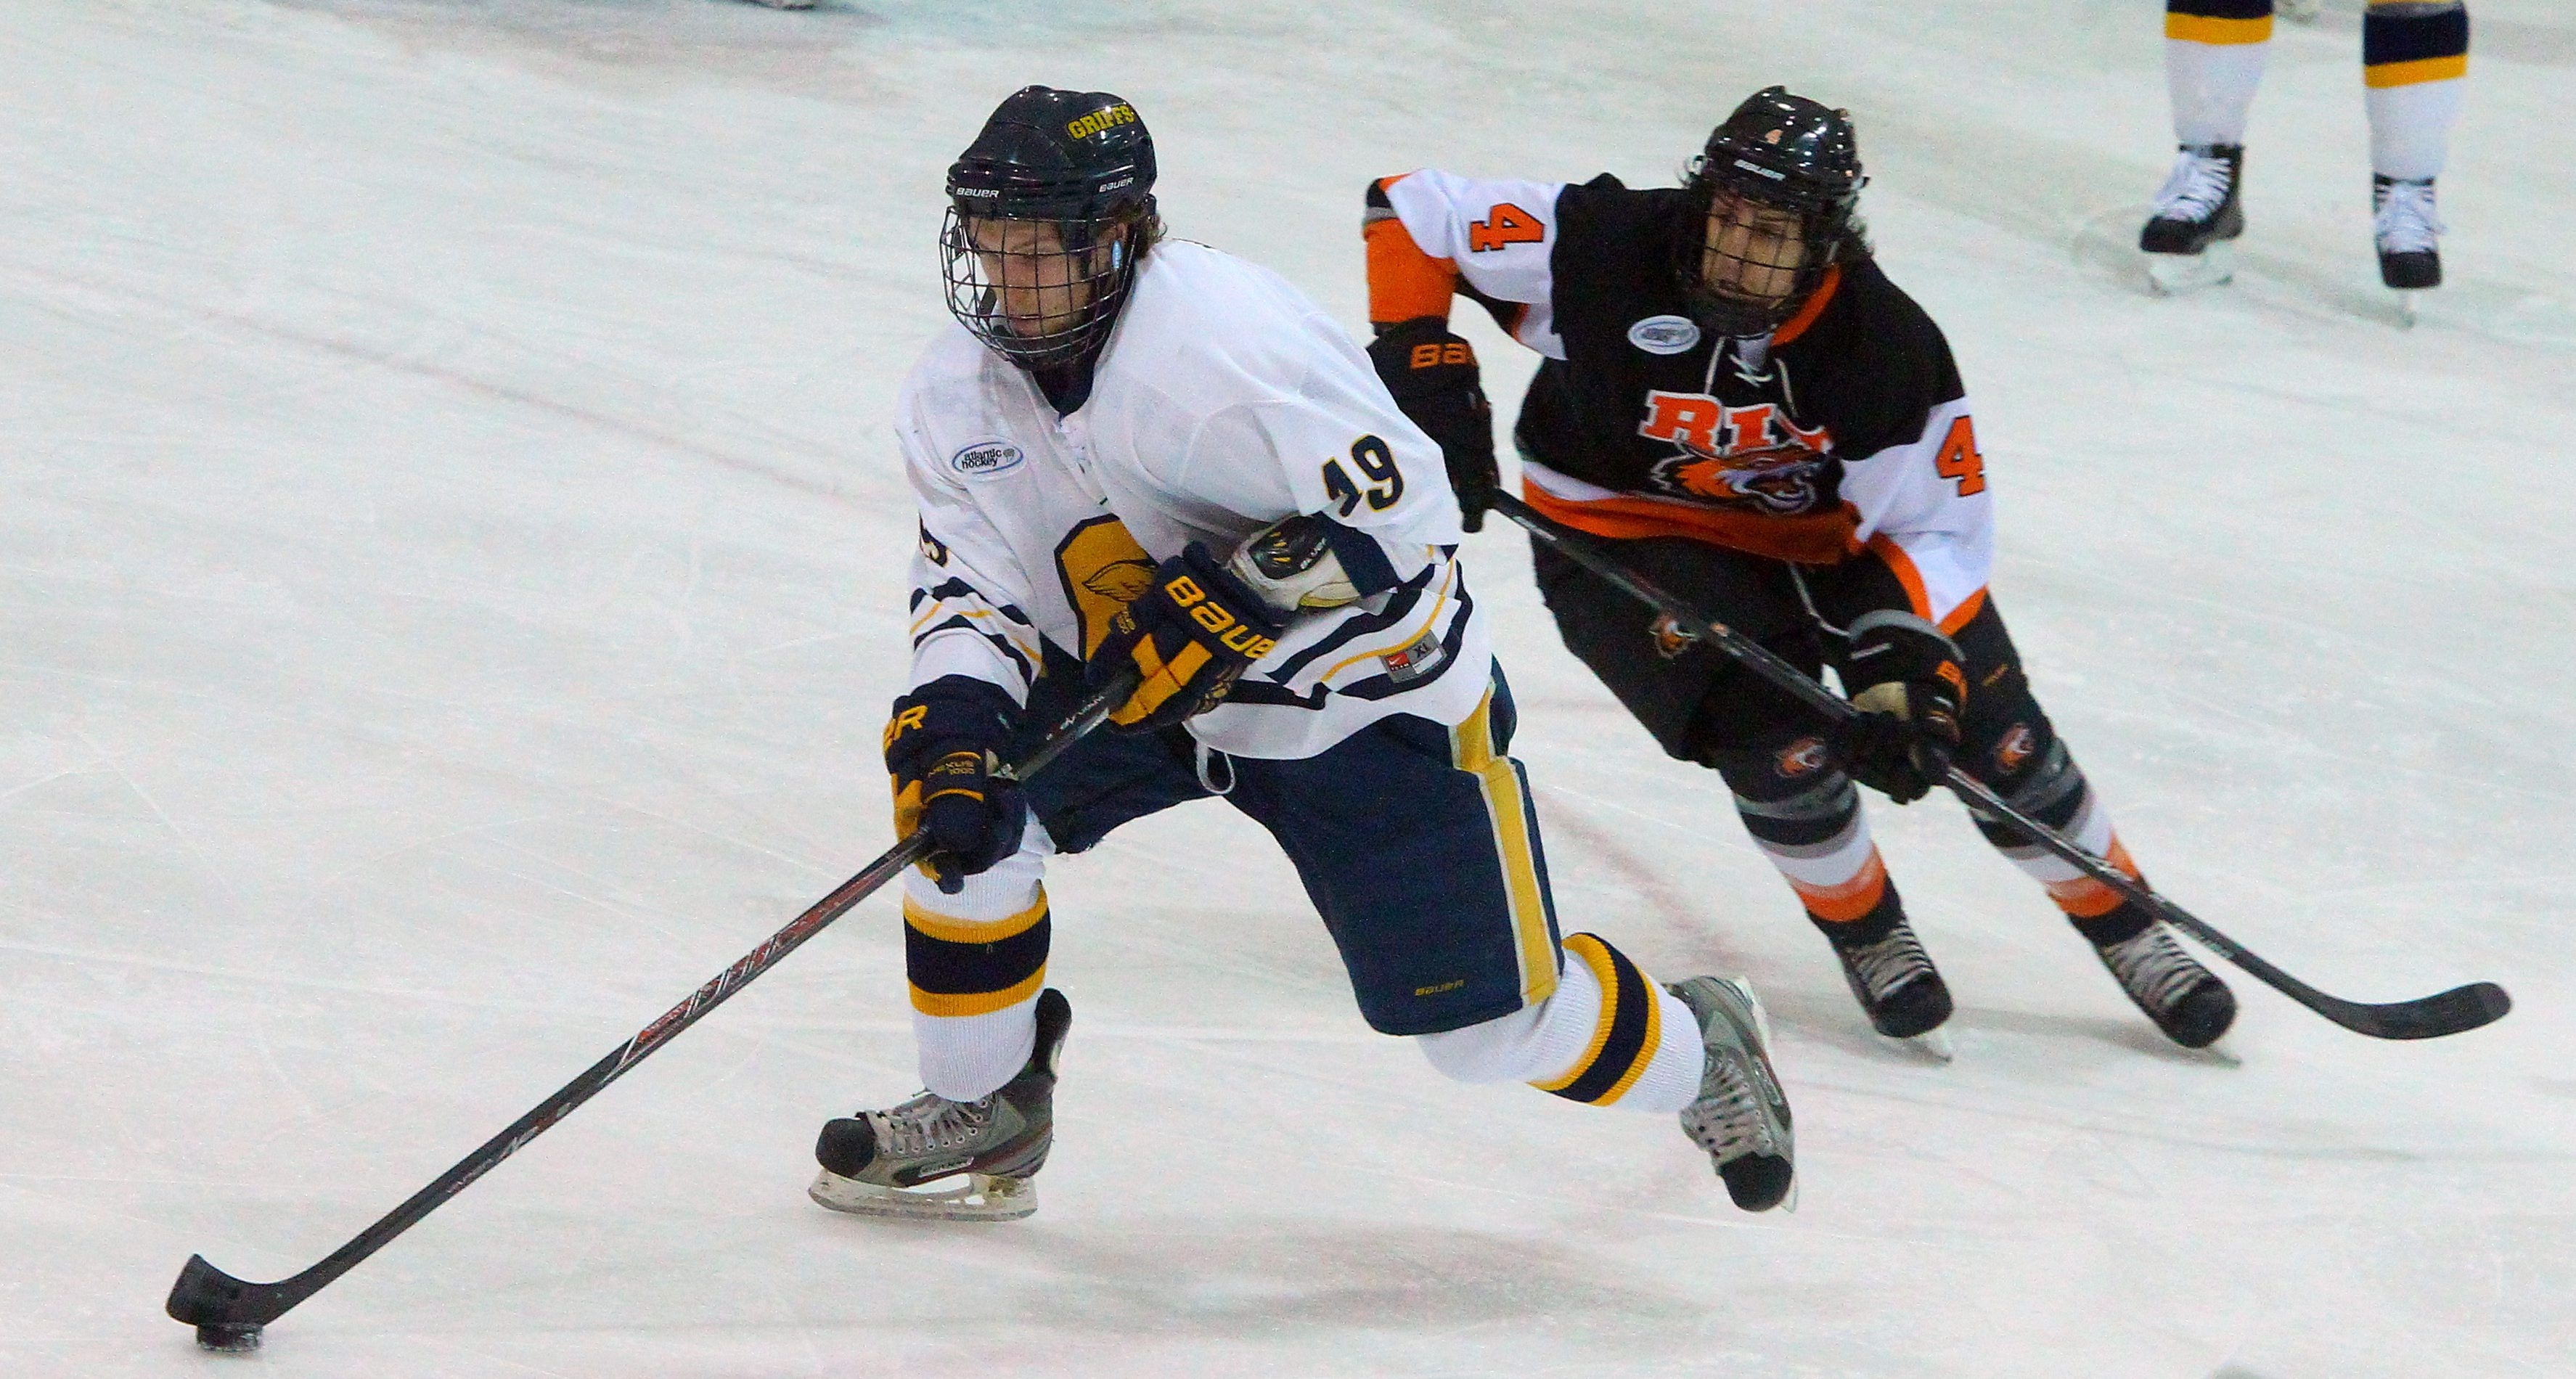 Tyler Wiseman of Canisius tries to clear the puck as RIT's Mike Colavecchia covers him in the first period at Buffalo State.